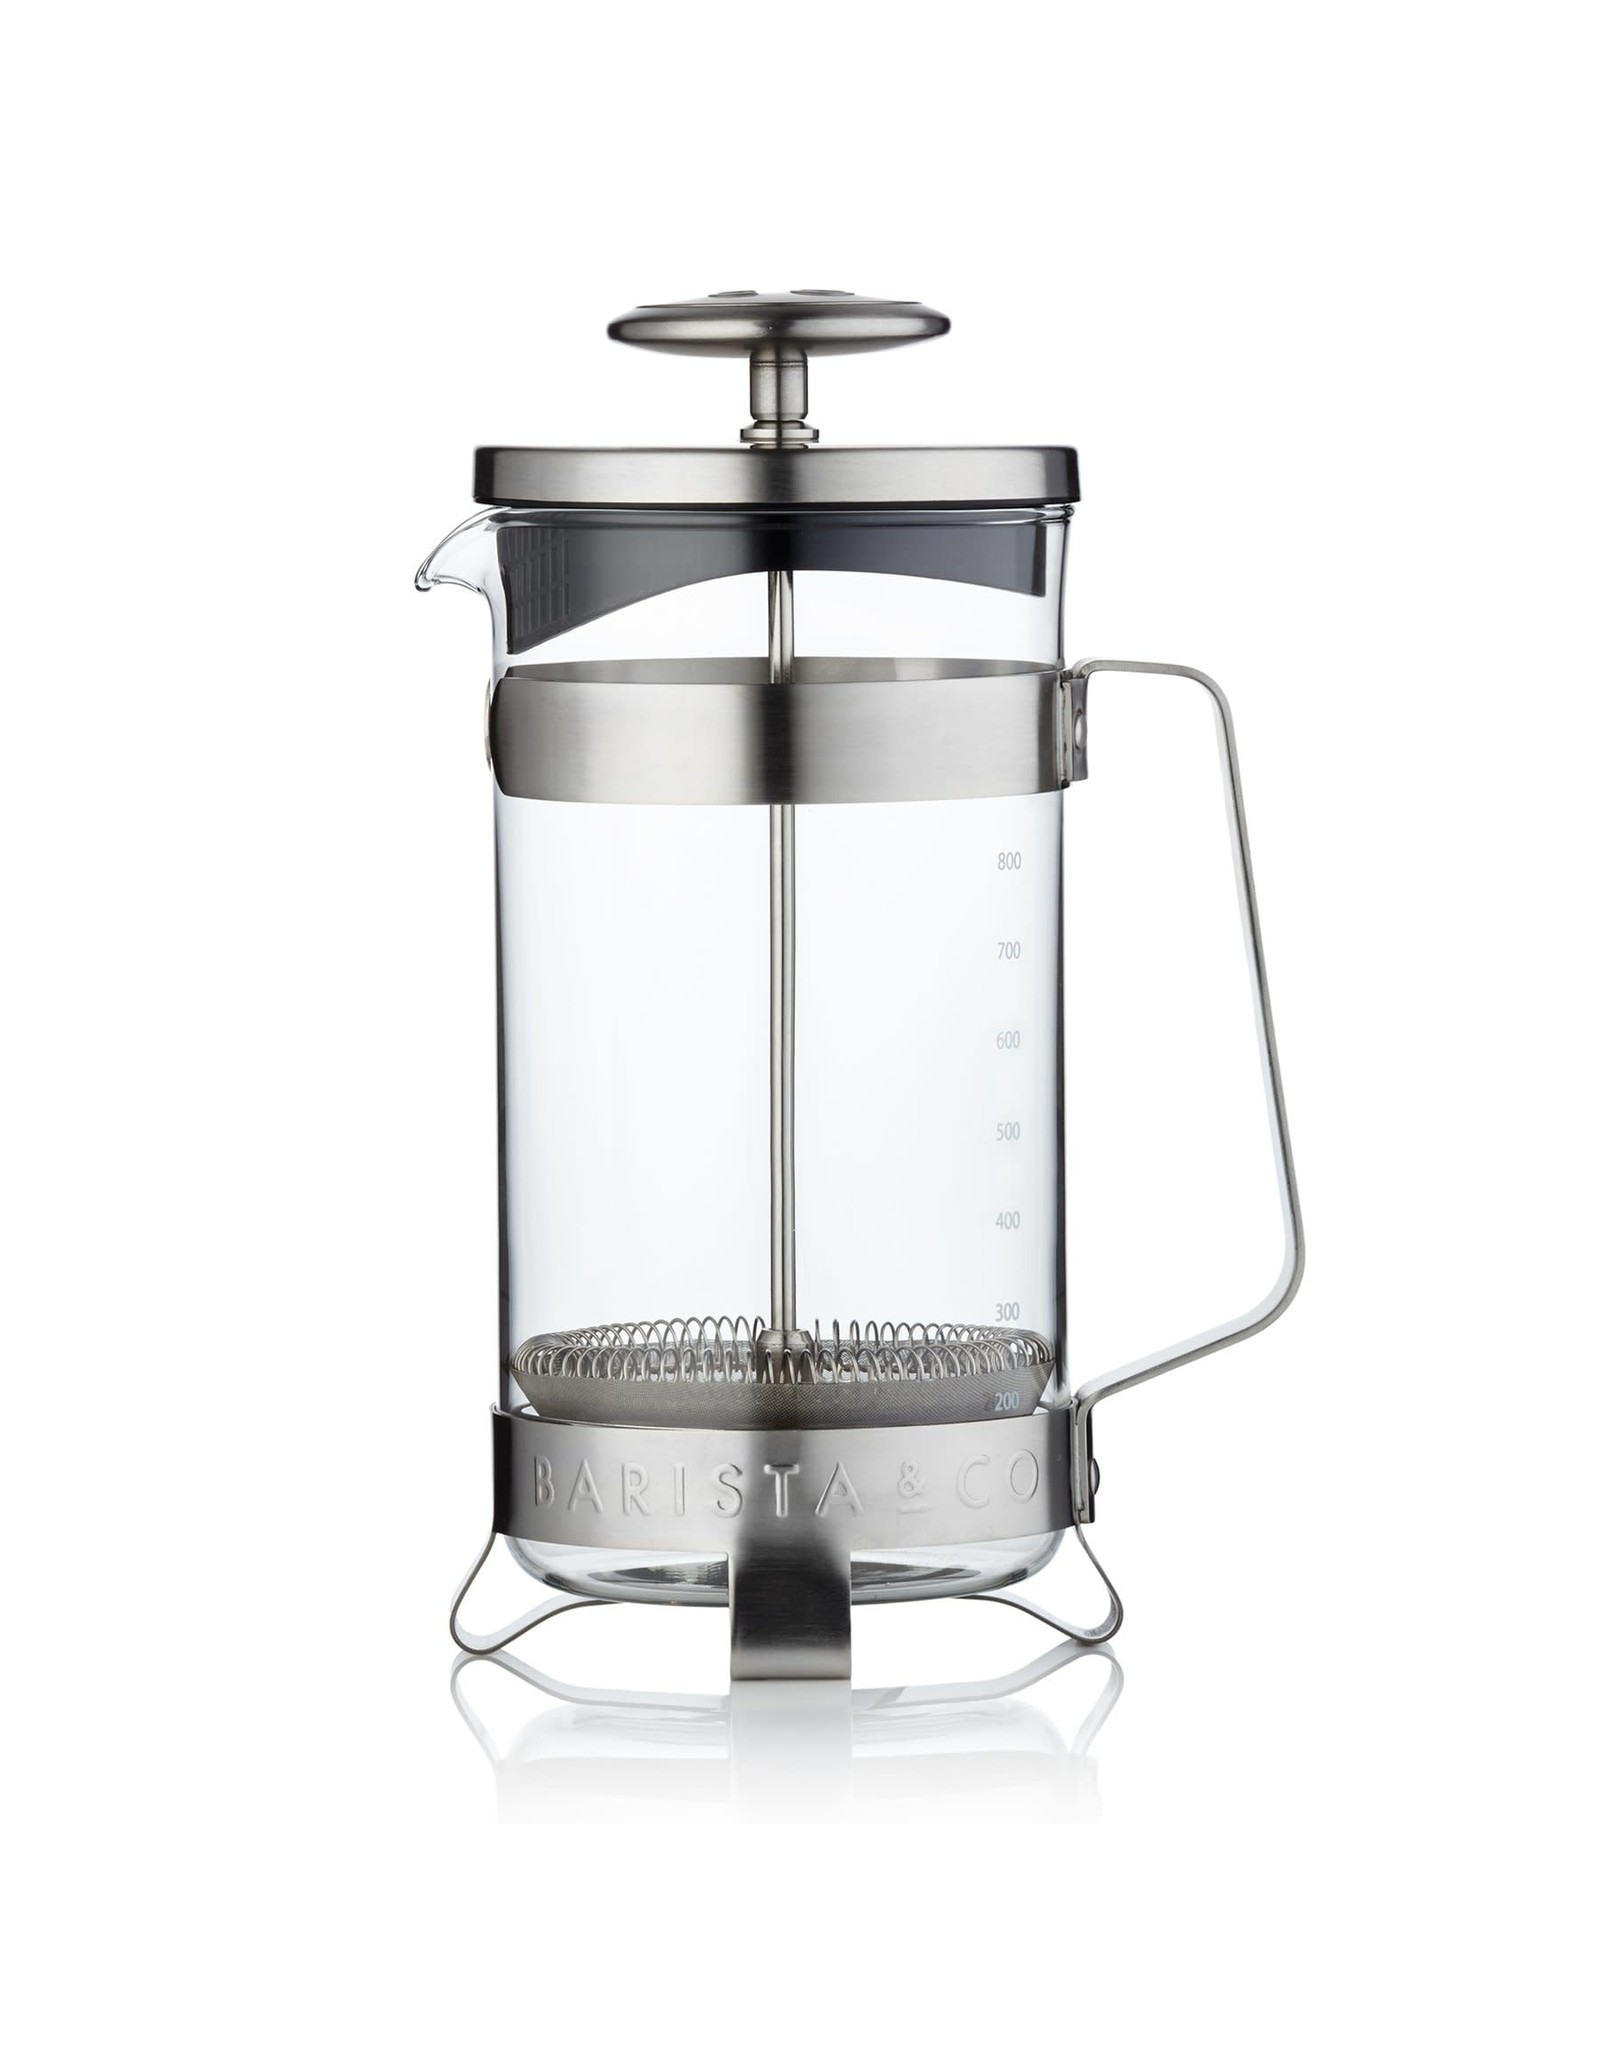 Barista&Co Electric French Press